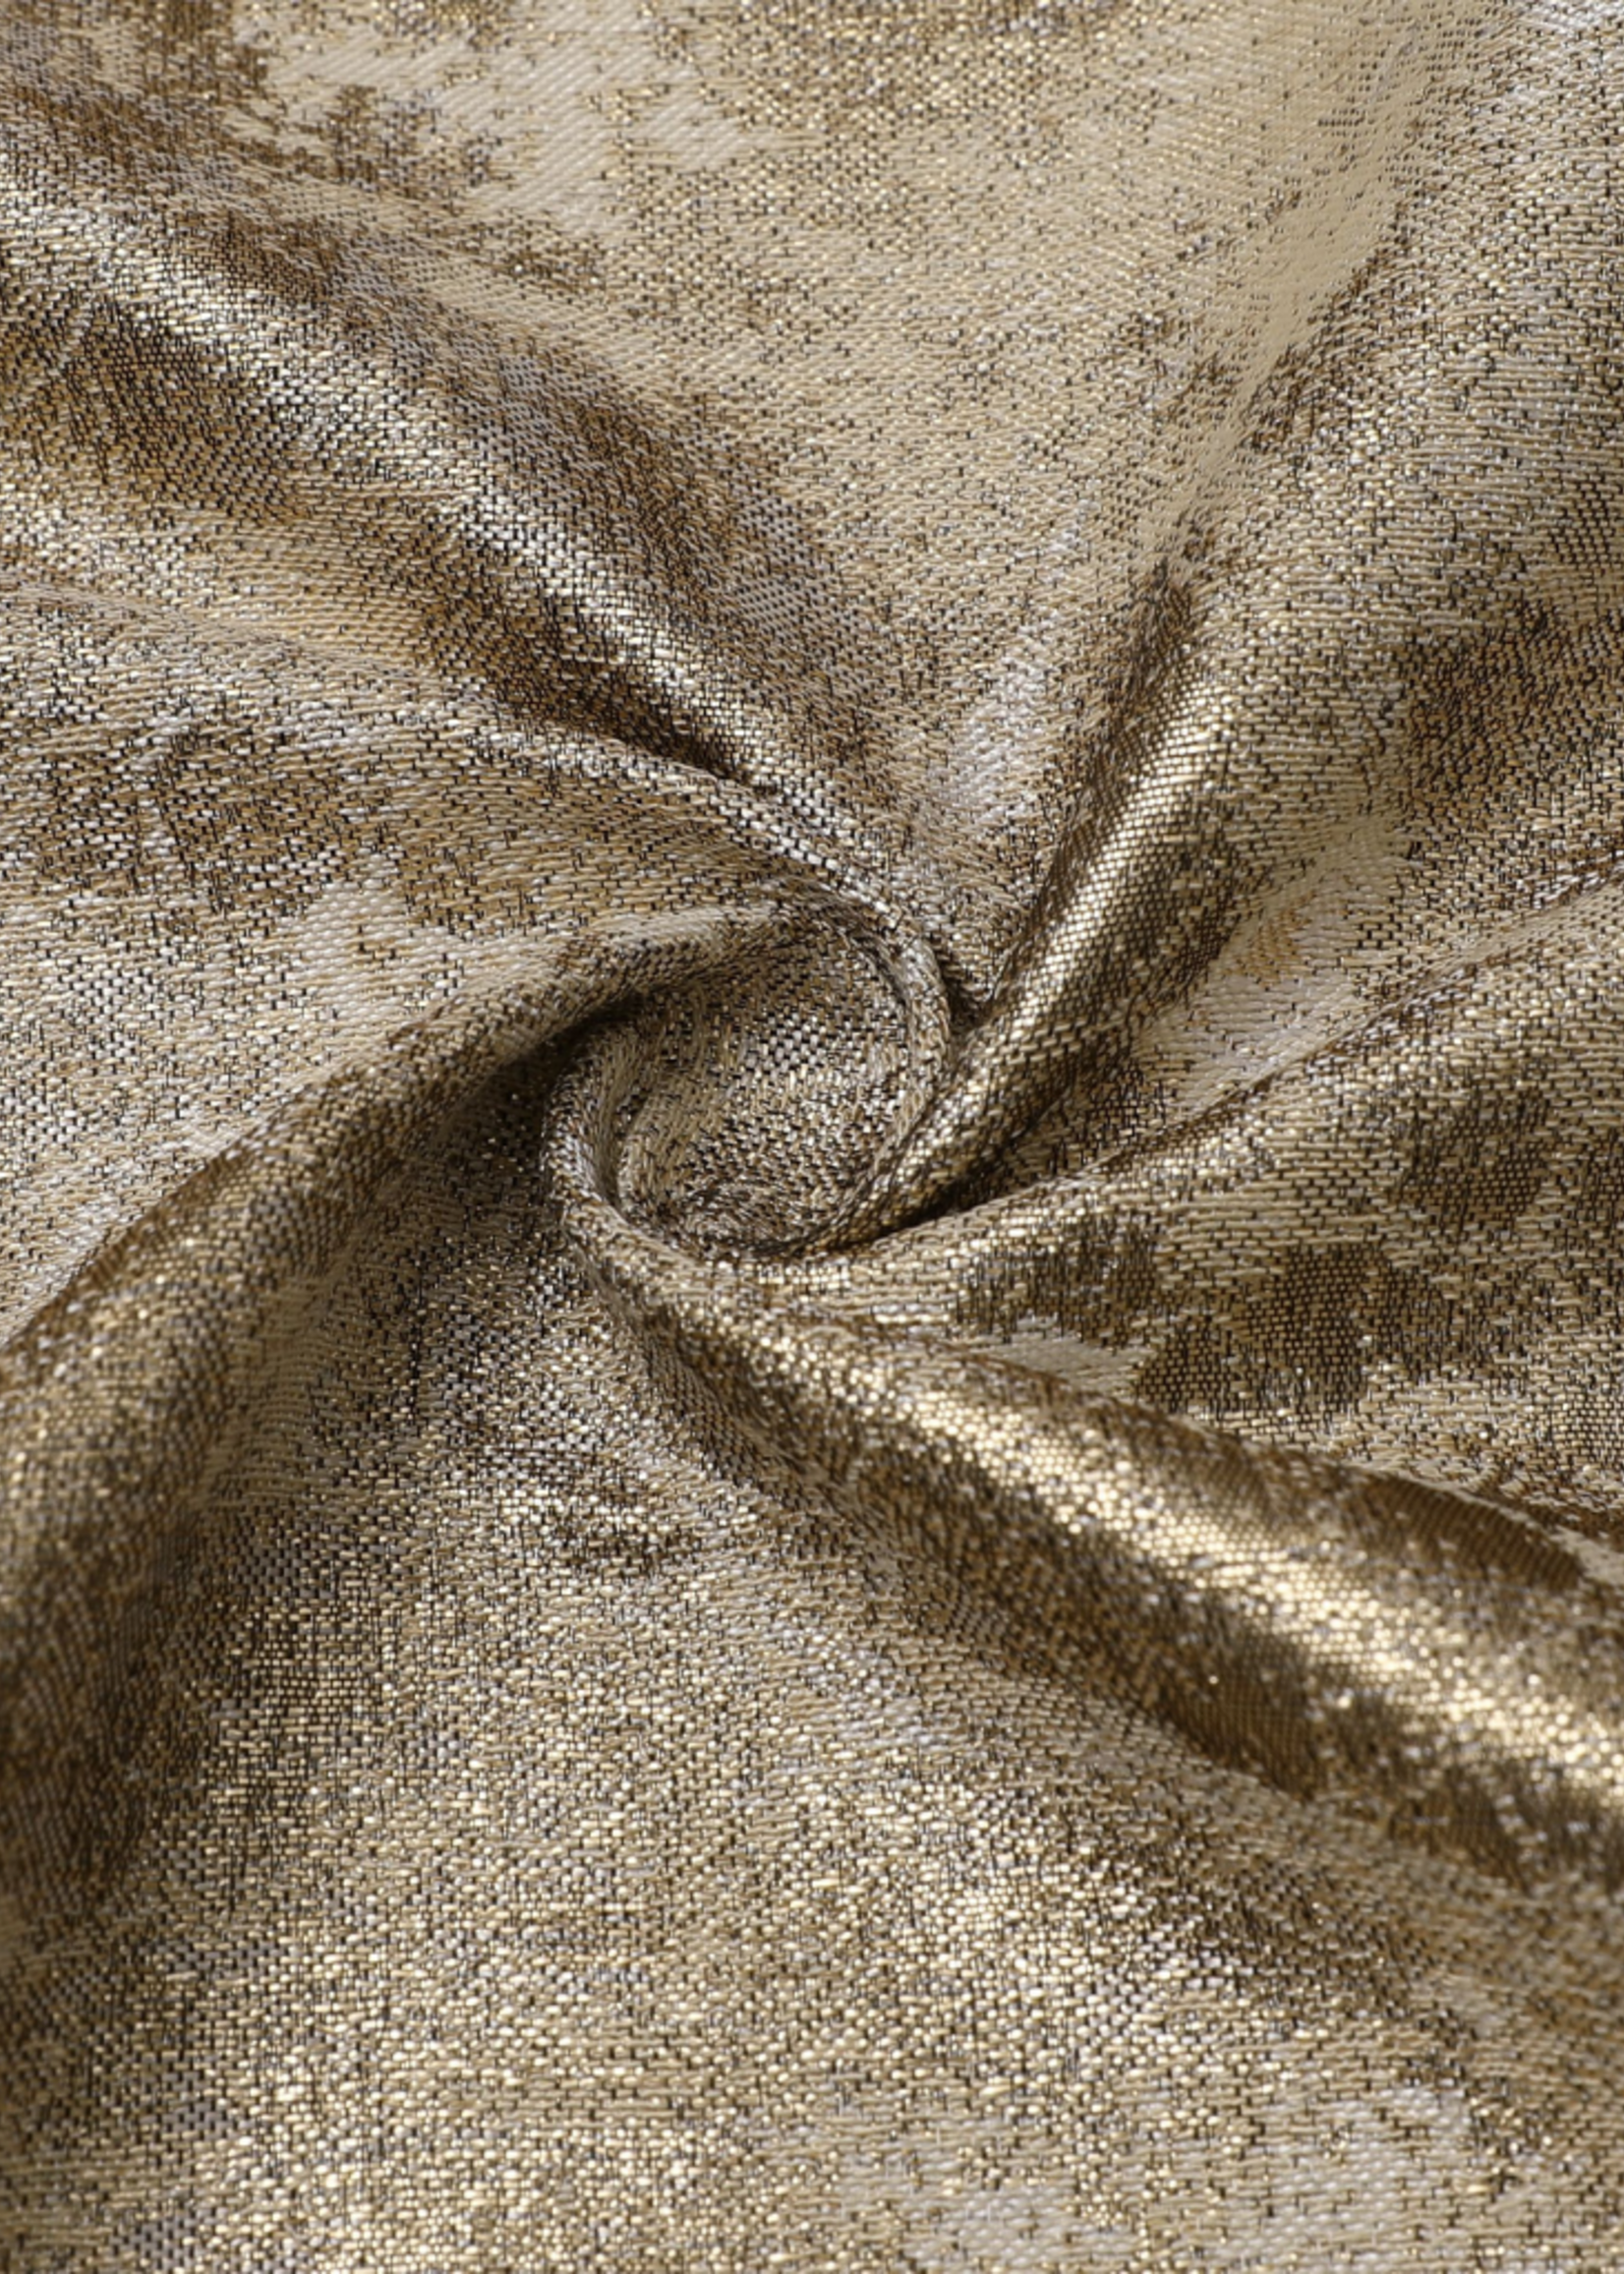 Jacquard Tablecloth Gold Luster #1225